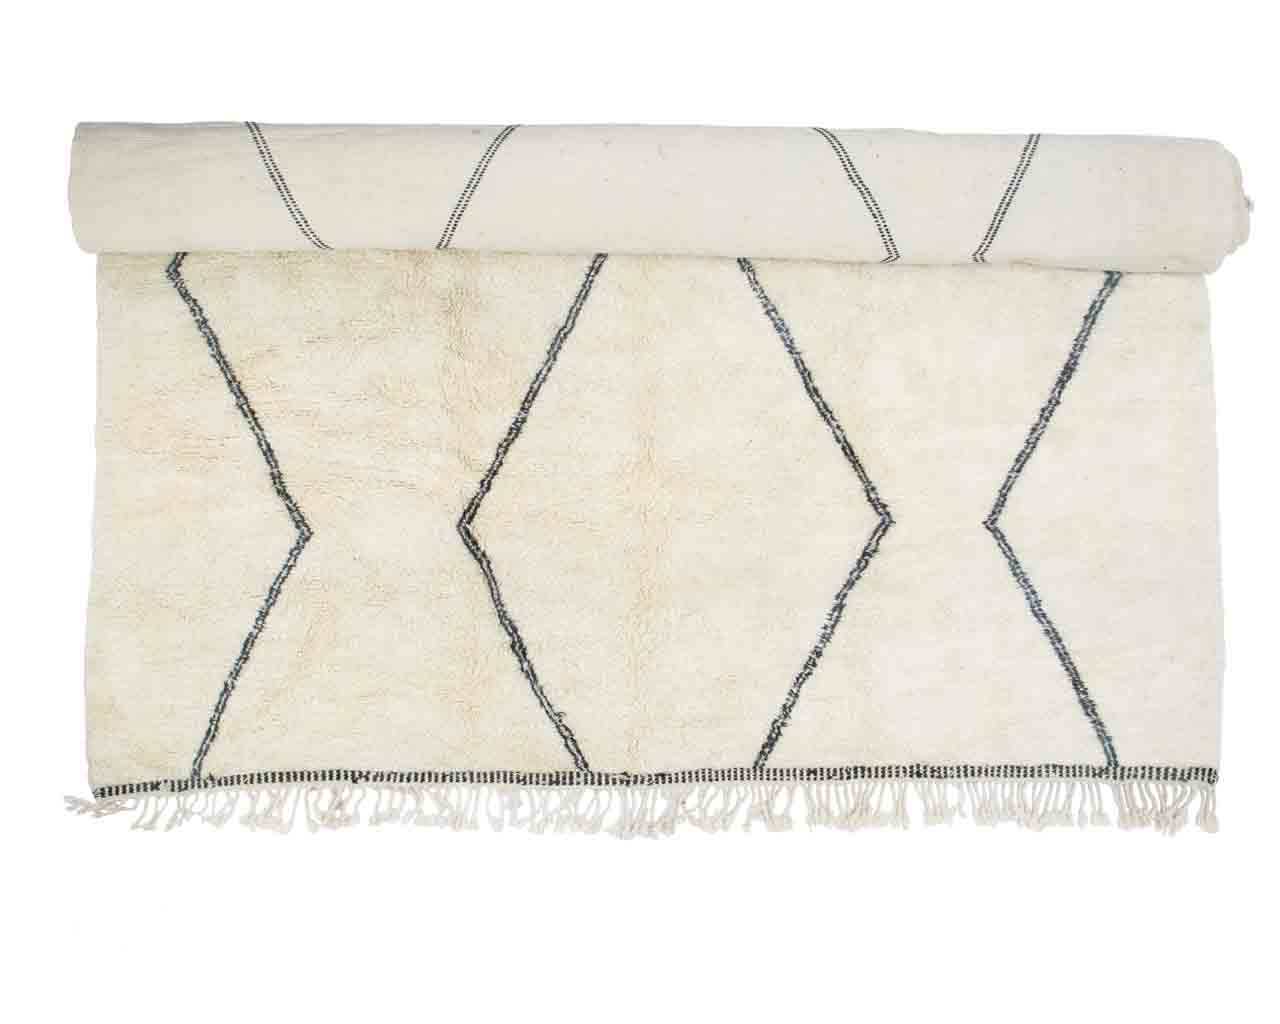 Naima 400cm x 300cm OUTLET